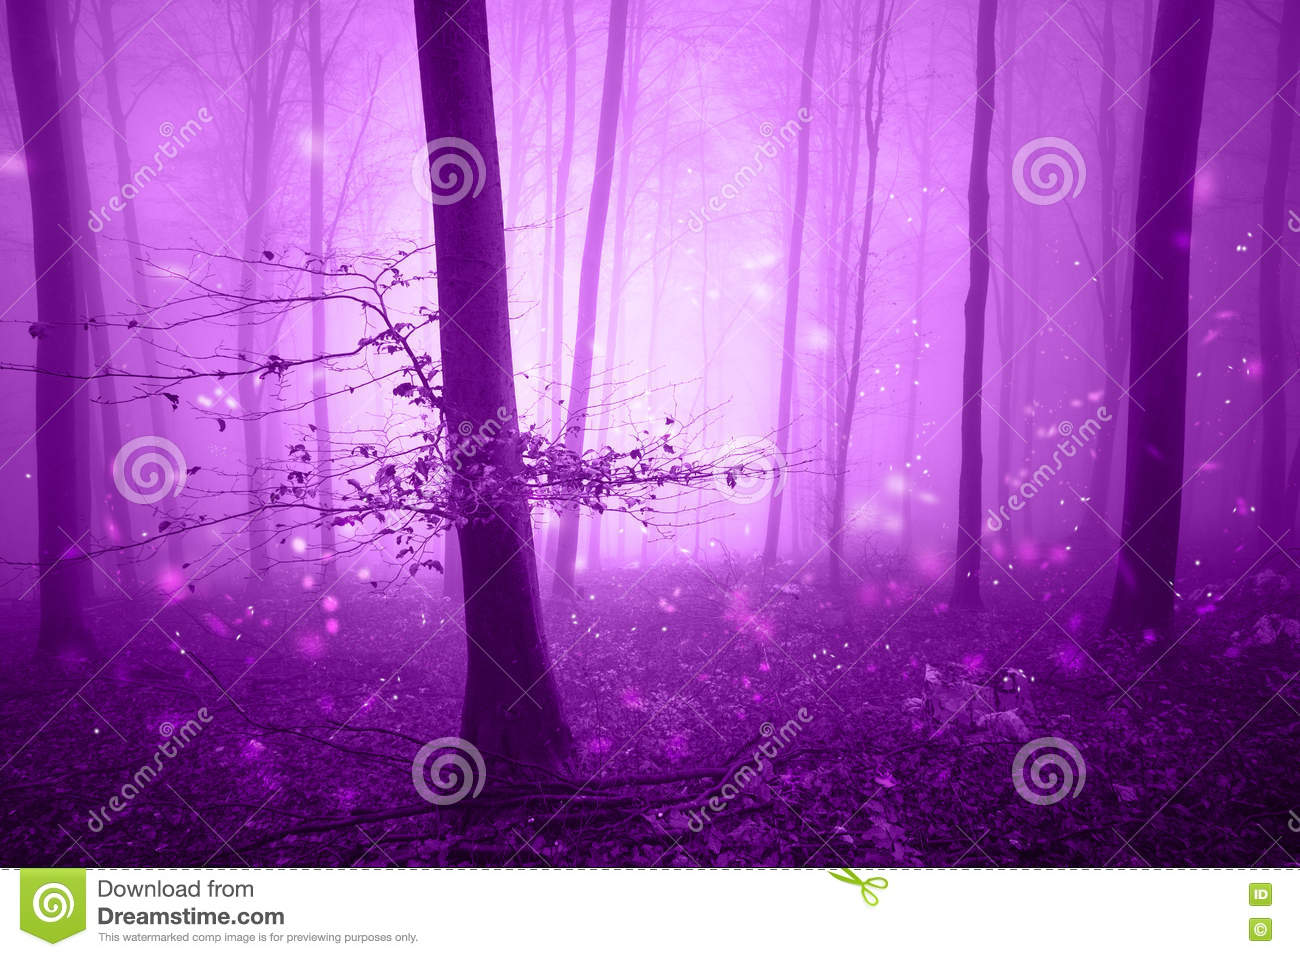 Magic pink forest fairytale with fireflies